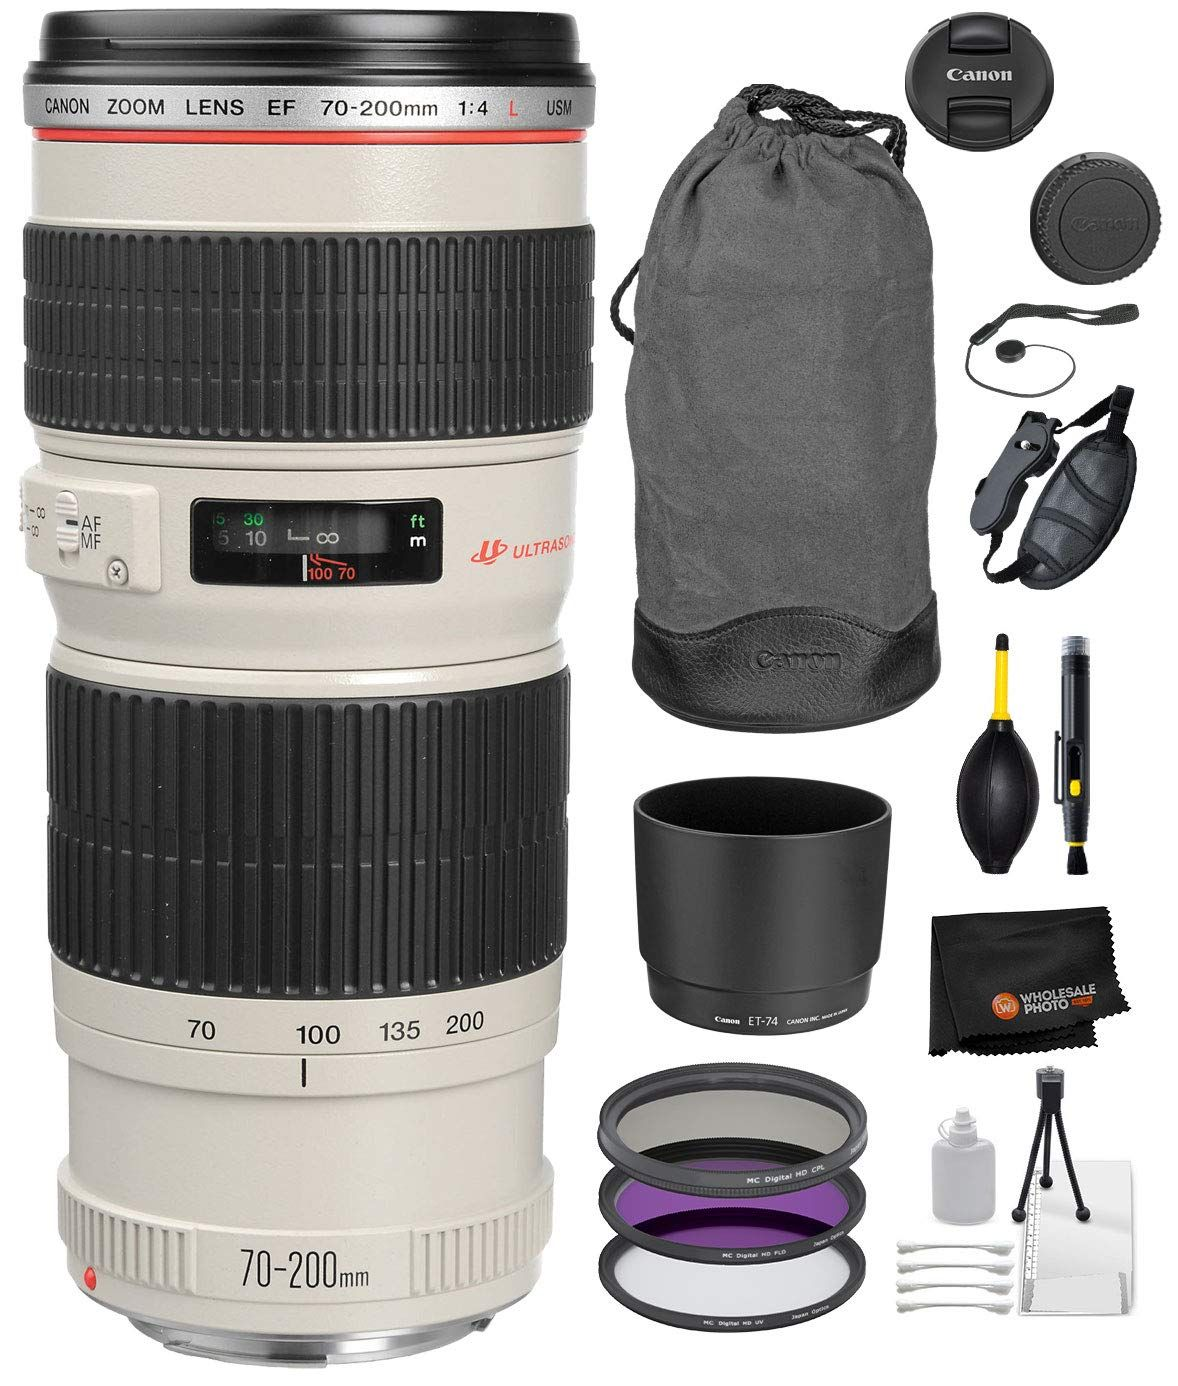 Canon EF 70-200mm f/4L USM Lens with Professional Bundle Package